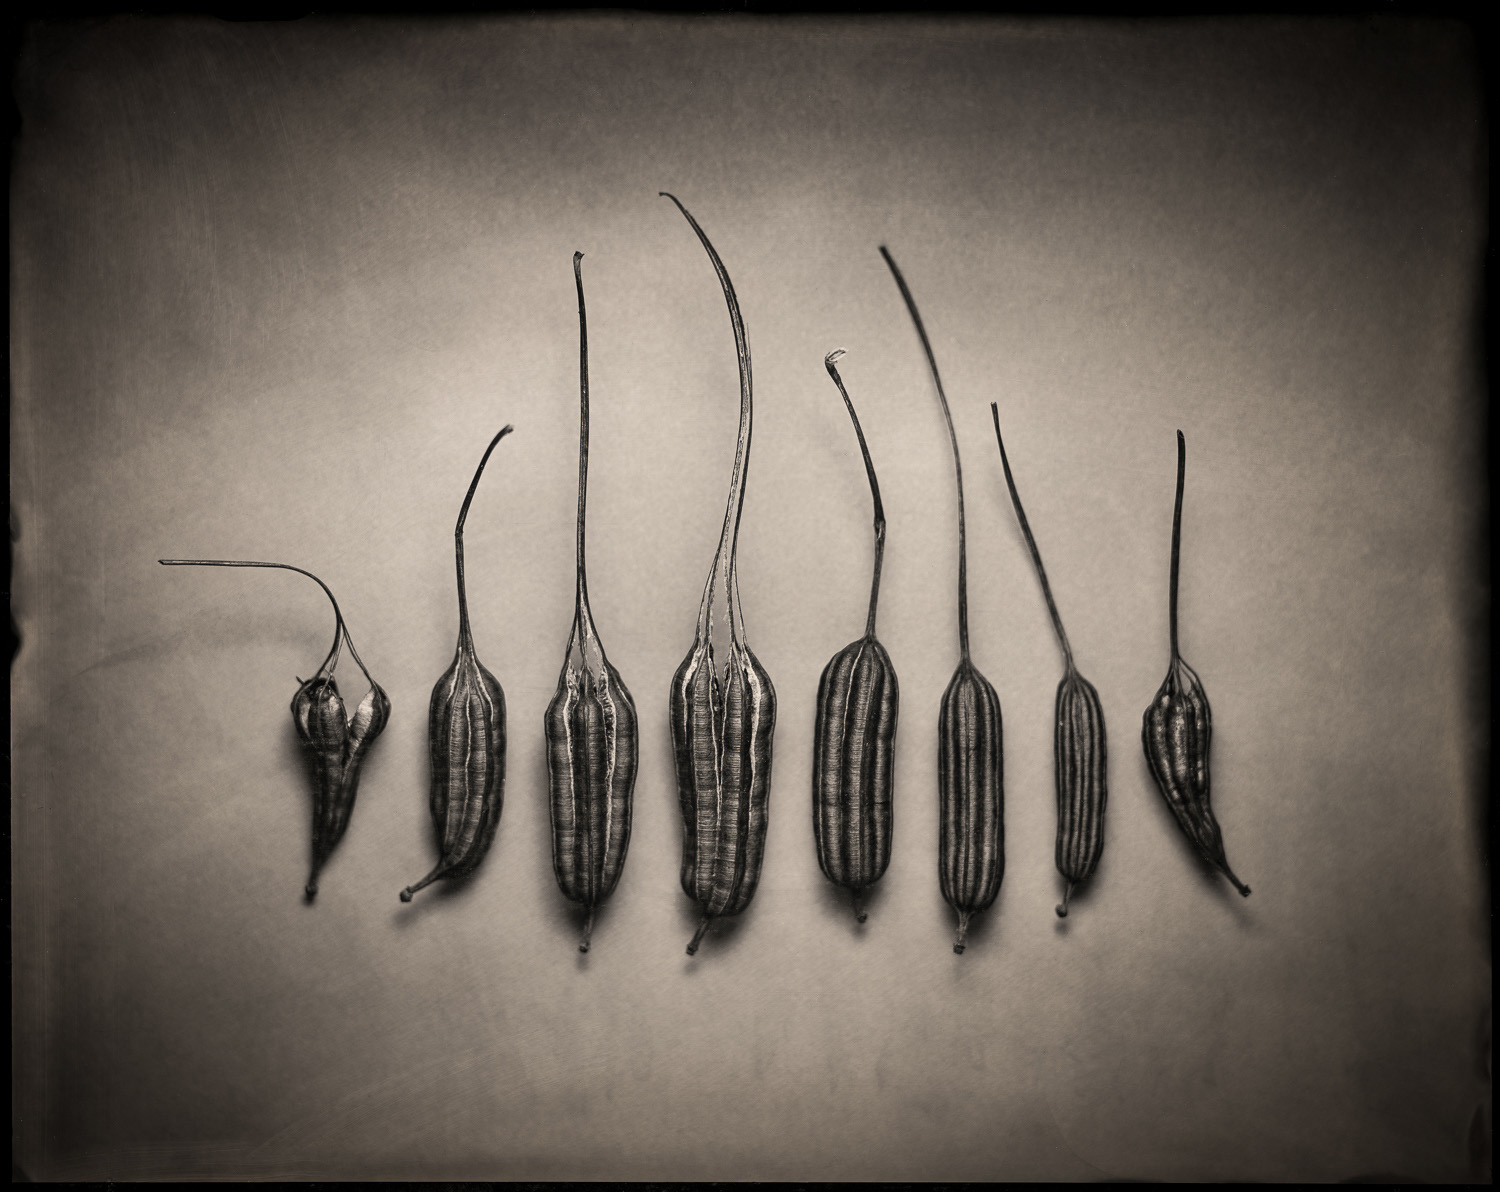 Aristolochia Pods - By: Paul Barden  https://www.flickr.com/photos/paulbarden/albums/72157681930450222   I've had a life-long fascination with plants of all kinds, and seed pod morphology is particularly fascinating to me. The Aristolochia elegans seed pods are a great example, with their matte black woody hulls. This is not the first time I have used these pods as the subject of a photograph, but this is the first time I have crafted a photo of them I consider to be nearly ideal in style and feel. Only the wet plate collodion process could deliver such a result.  This wet plate image was made in a makeshift studio at my house, simply arranging a selection of seed pods on a dark grey seamless paper backdrop, held on with masking tape. The scene was lit with a compact fluorescent softbox from above, with some reflector fill from below. The compact fluorescents provided enough light to let me expose this scene at f11, using a Schneider Symmar-S 240mm lens. The collodion used in this case was very well aged Old Workhorse.  I enjoy doing work on my 22 acre farm near Corvallis because I firmly believe that to do good creative work, you don't  need  to leave home and seek out extraordinary sites. Often, there are rich photographic opportunities in your own home if you are willing to see them, and that can be a challenge because familiarity can make you blind to visual treasures that any other photographer might pounce on with excitement.  I'm very excited to win the Intrepid Camera and the wet plate supplies!